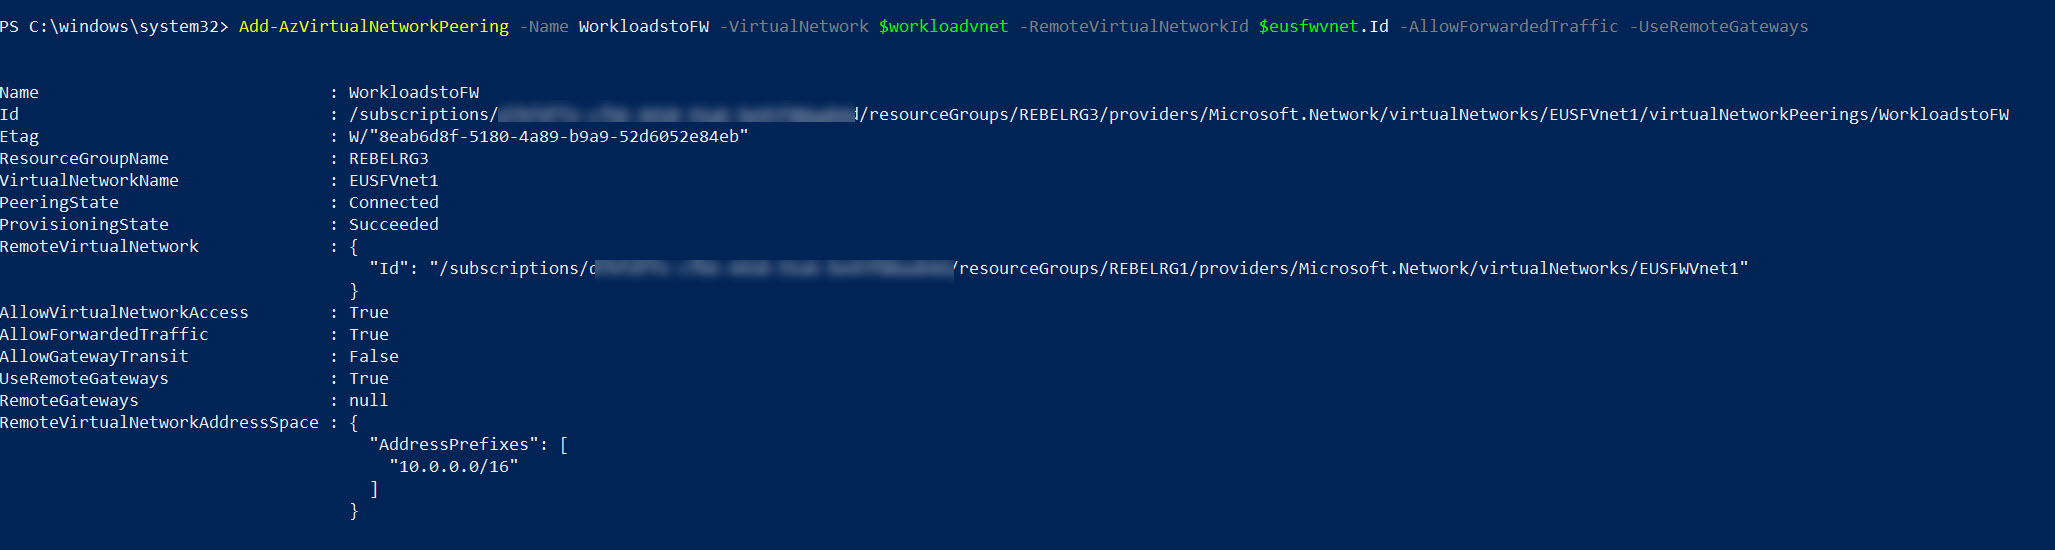 Create VNet Peering from Workloads network to Azure Firewall virtual network